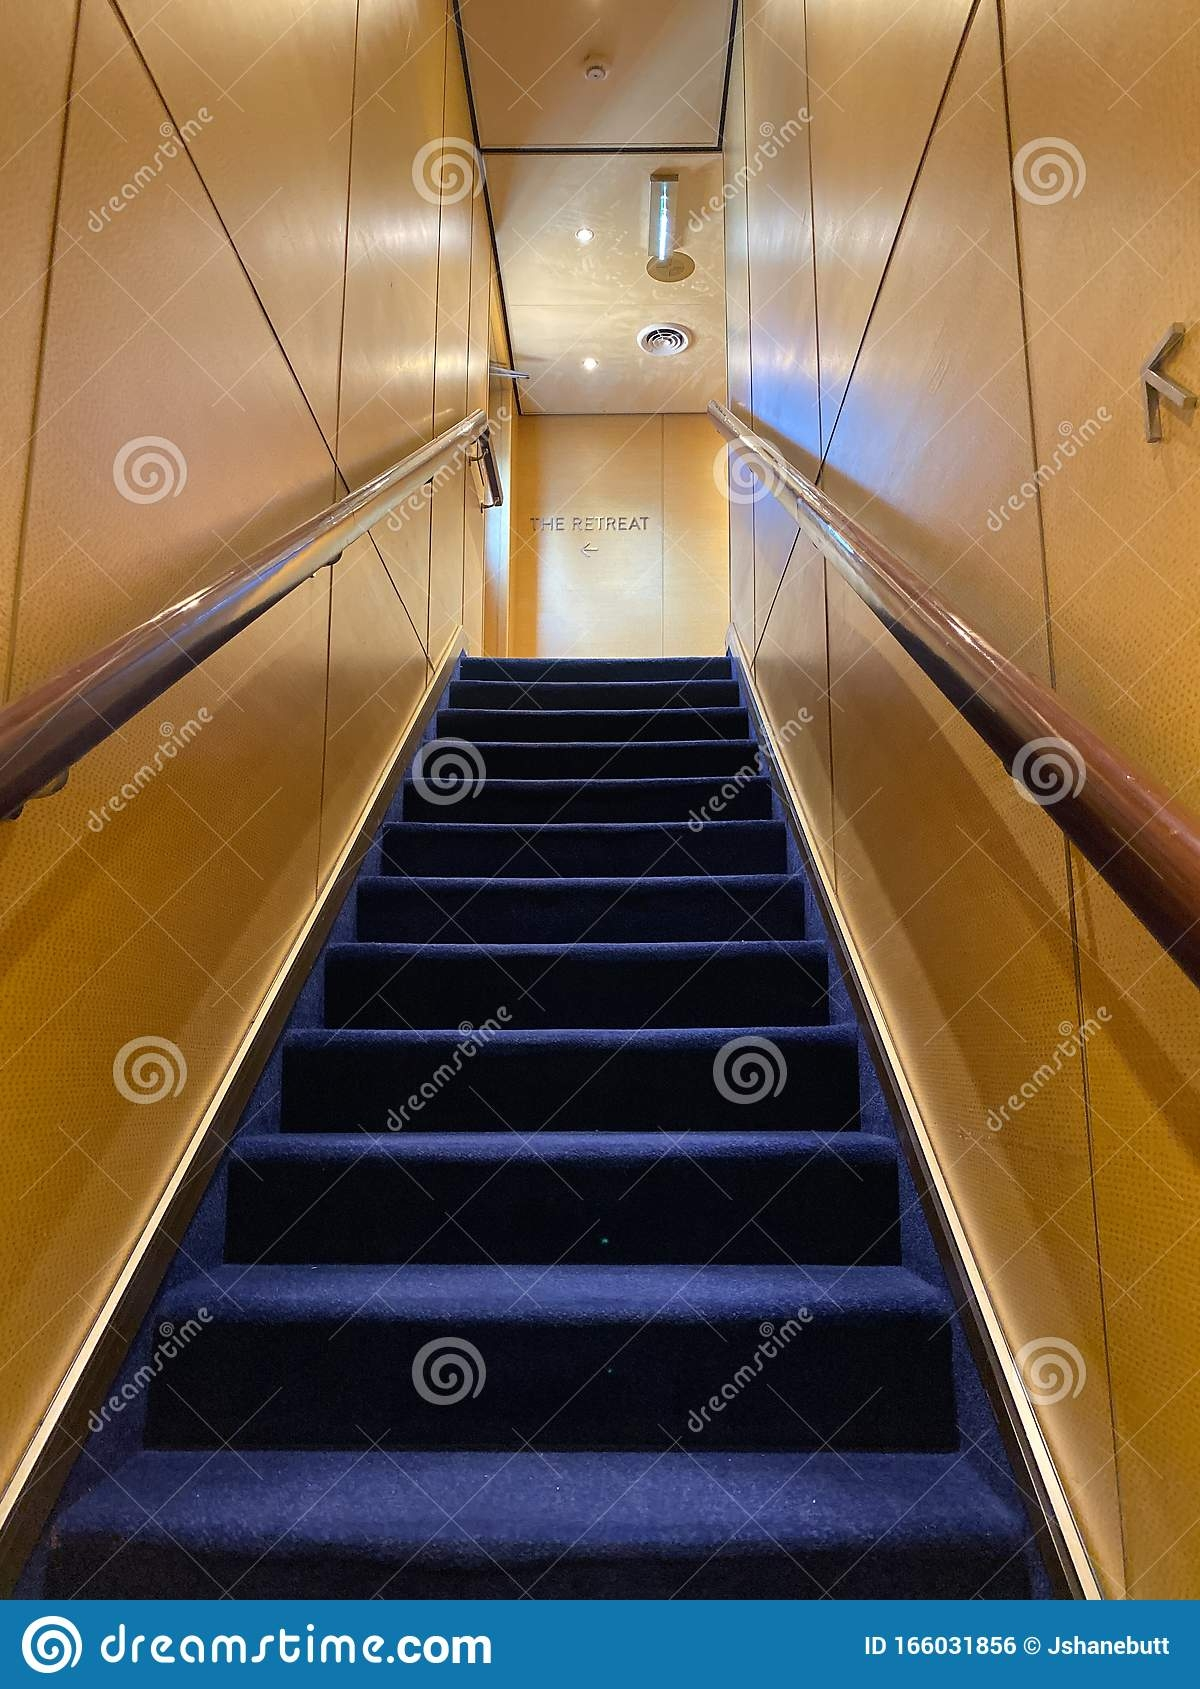 A Stairway On A Cruise Ship With Blue Carpet And Cream Colored   Blue Carpet On Stairs   Wooden   Grey Stair White Wall   Antelope   Geometric   Gray